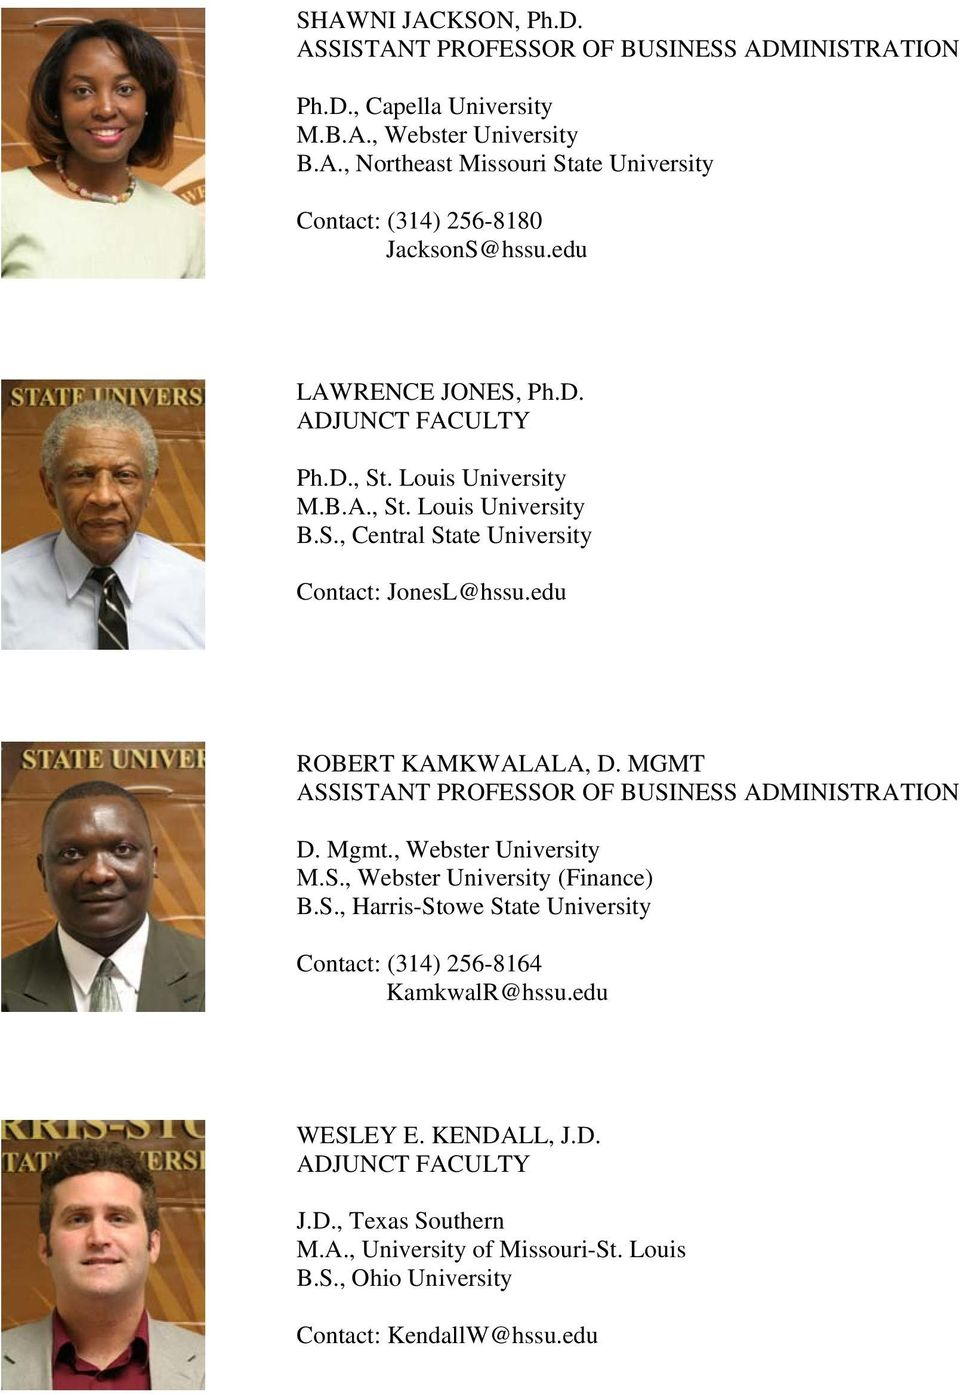 MGMT ASSISTANT PROFESSOR OF BUSINESS ADMINISTRATION D. Mgmt., Webster University M.S., Webster University (Finance) B.S., Harris-Stowe State University Contact: (314) 256-8164 KamkwalR@hssu.